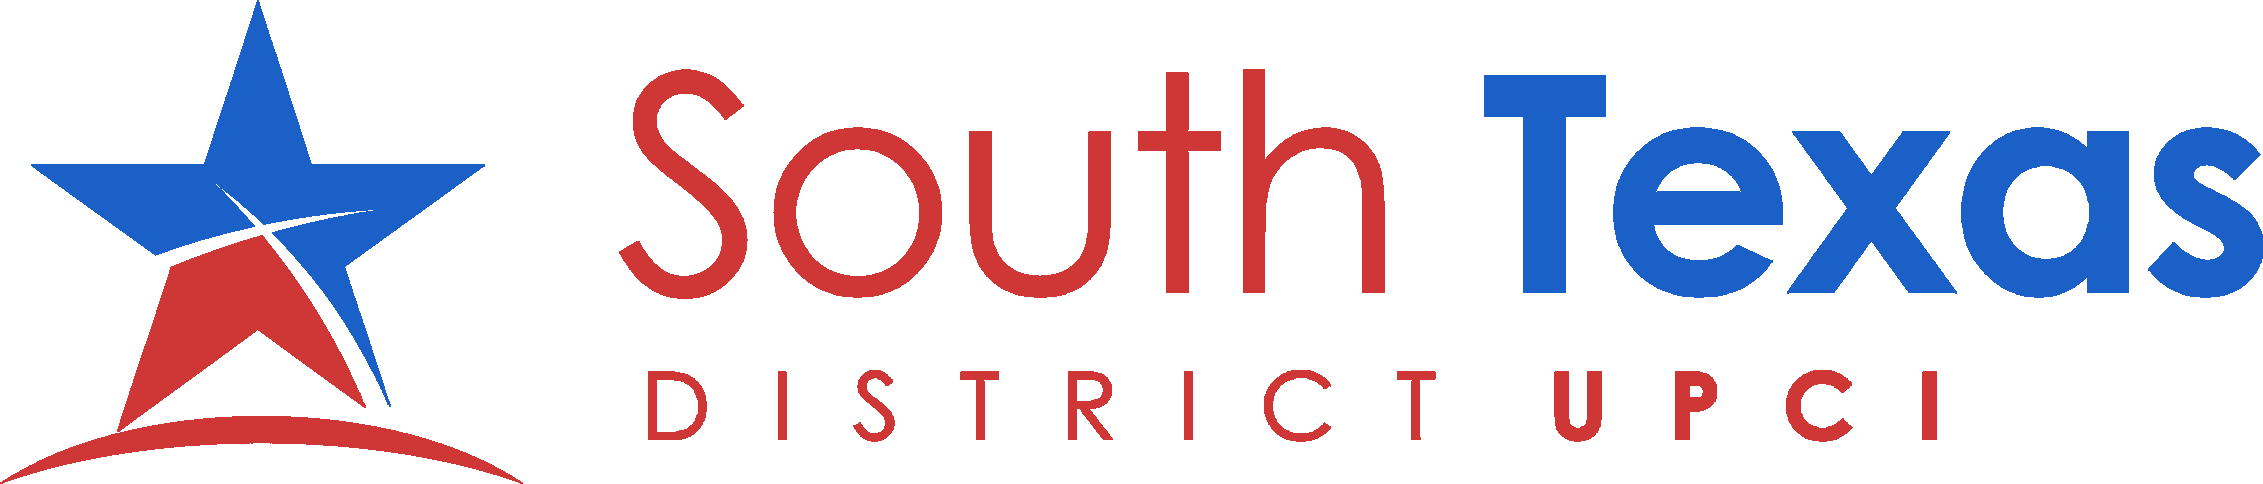 South Texas District UPCI